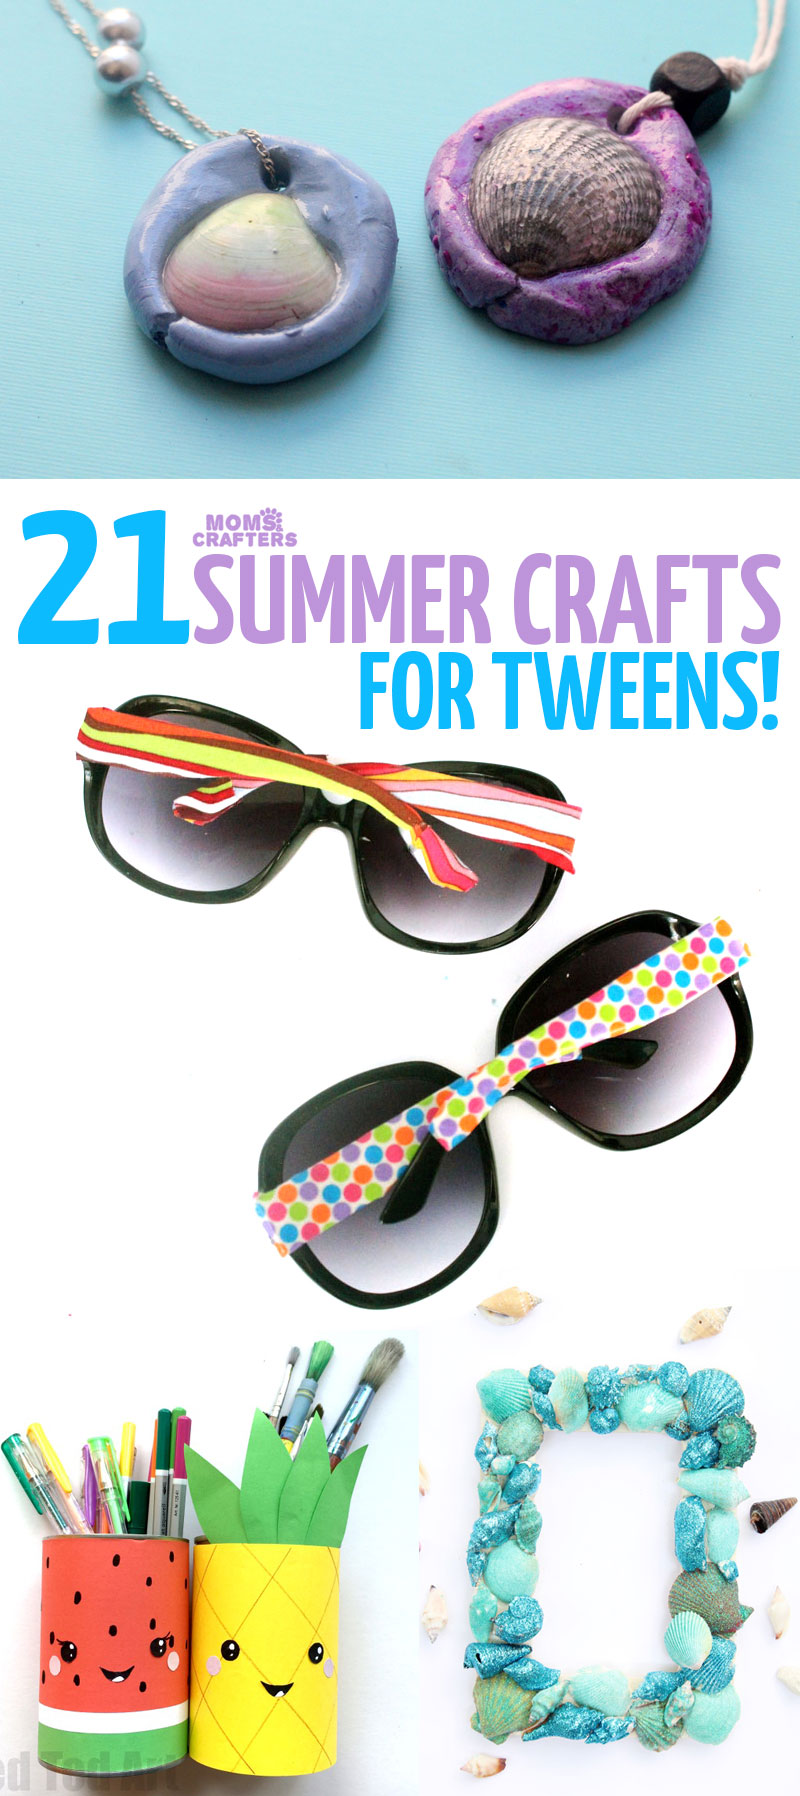 Click For 21 Summer Crafts Tweens Including Ideas Seashell And Cool Fashion